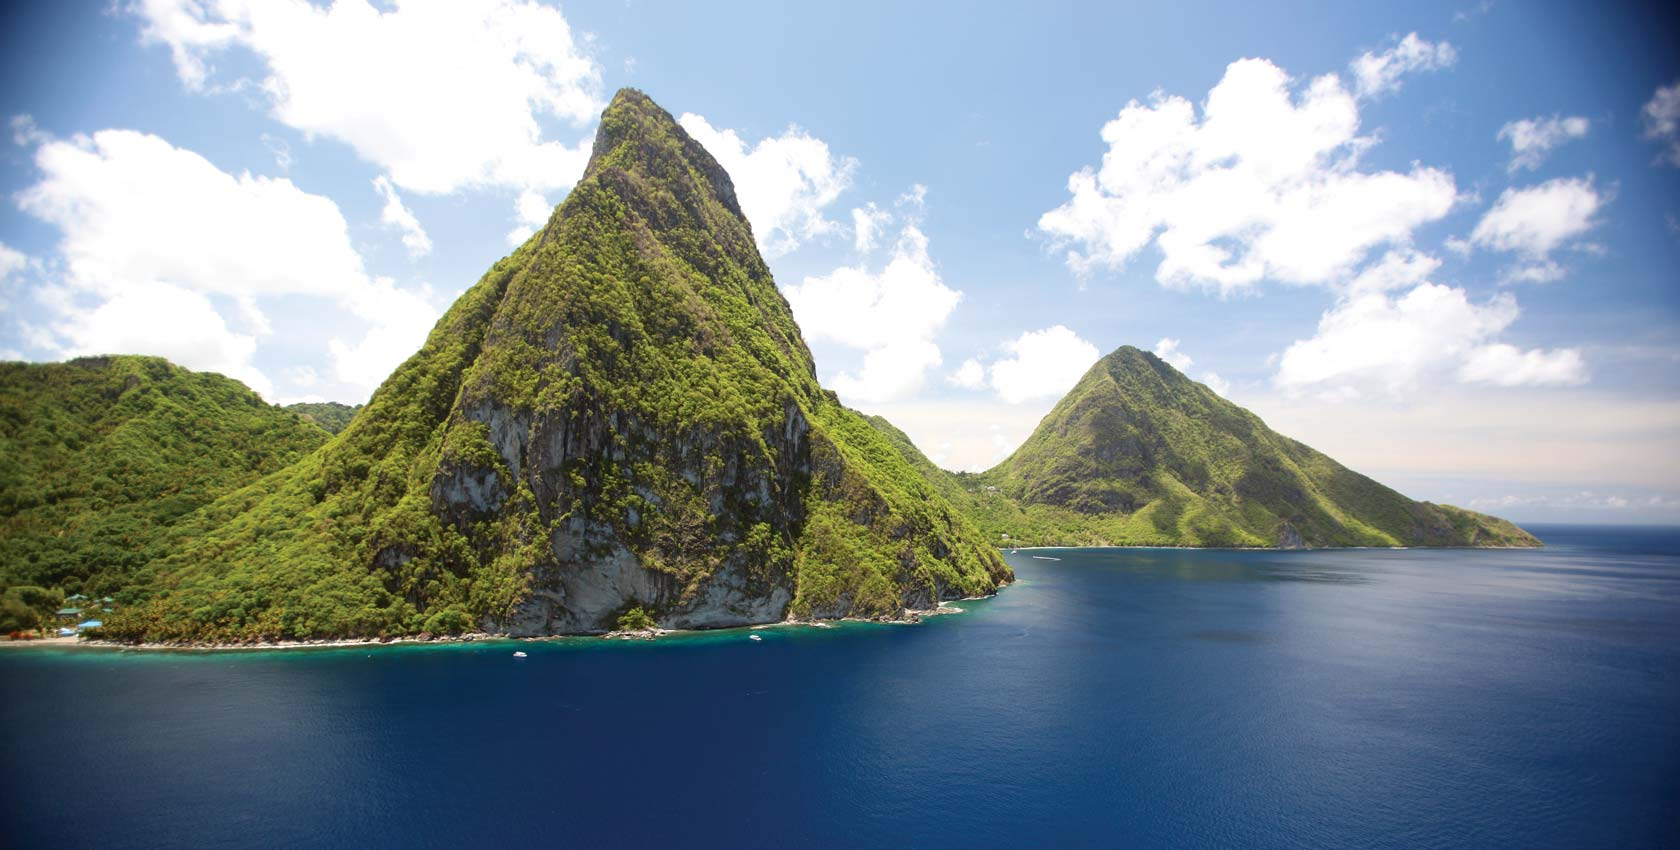 St.Lucia Wallpaper